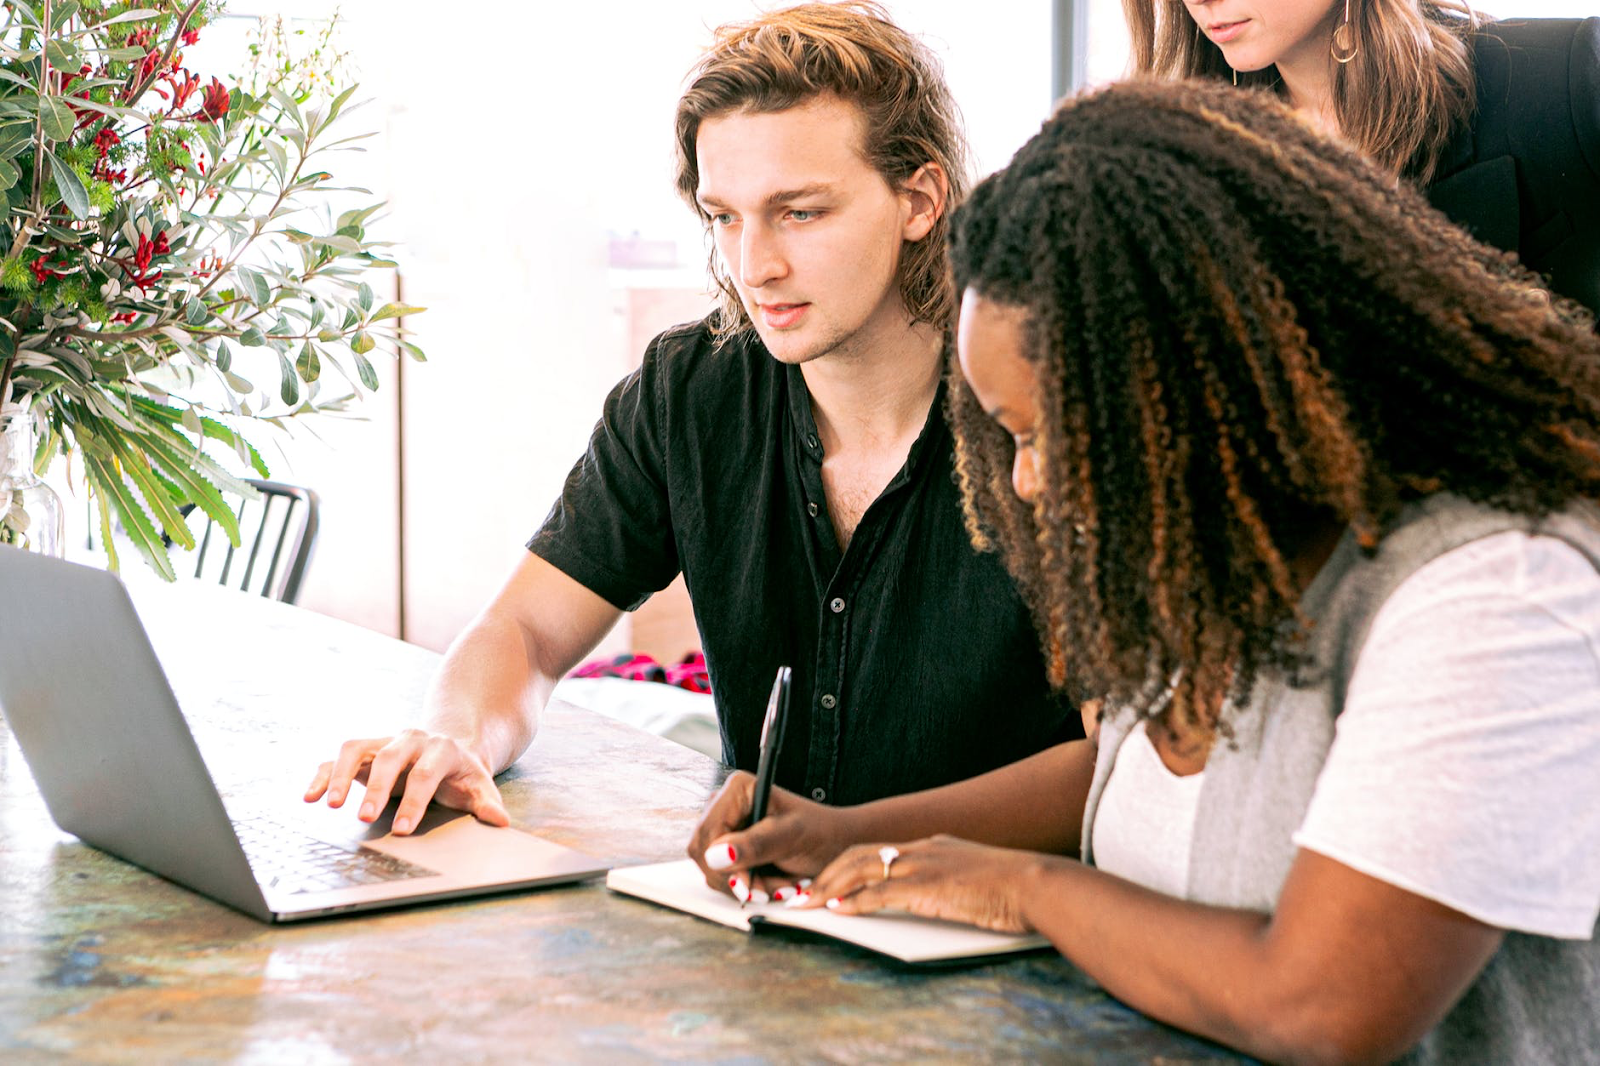 Strengthen Your Contractor Relationships with These 4 Tips